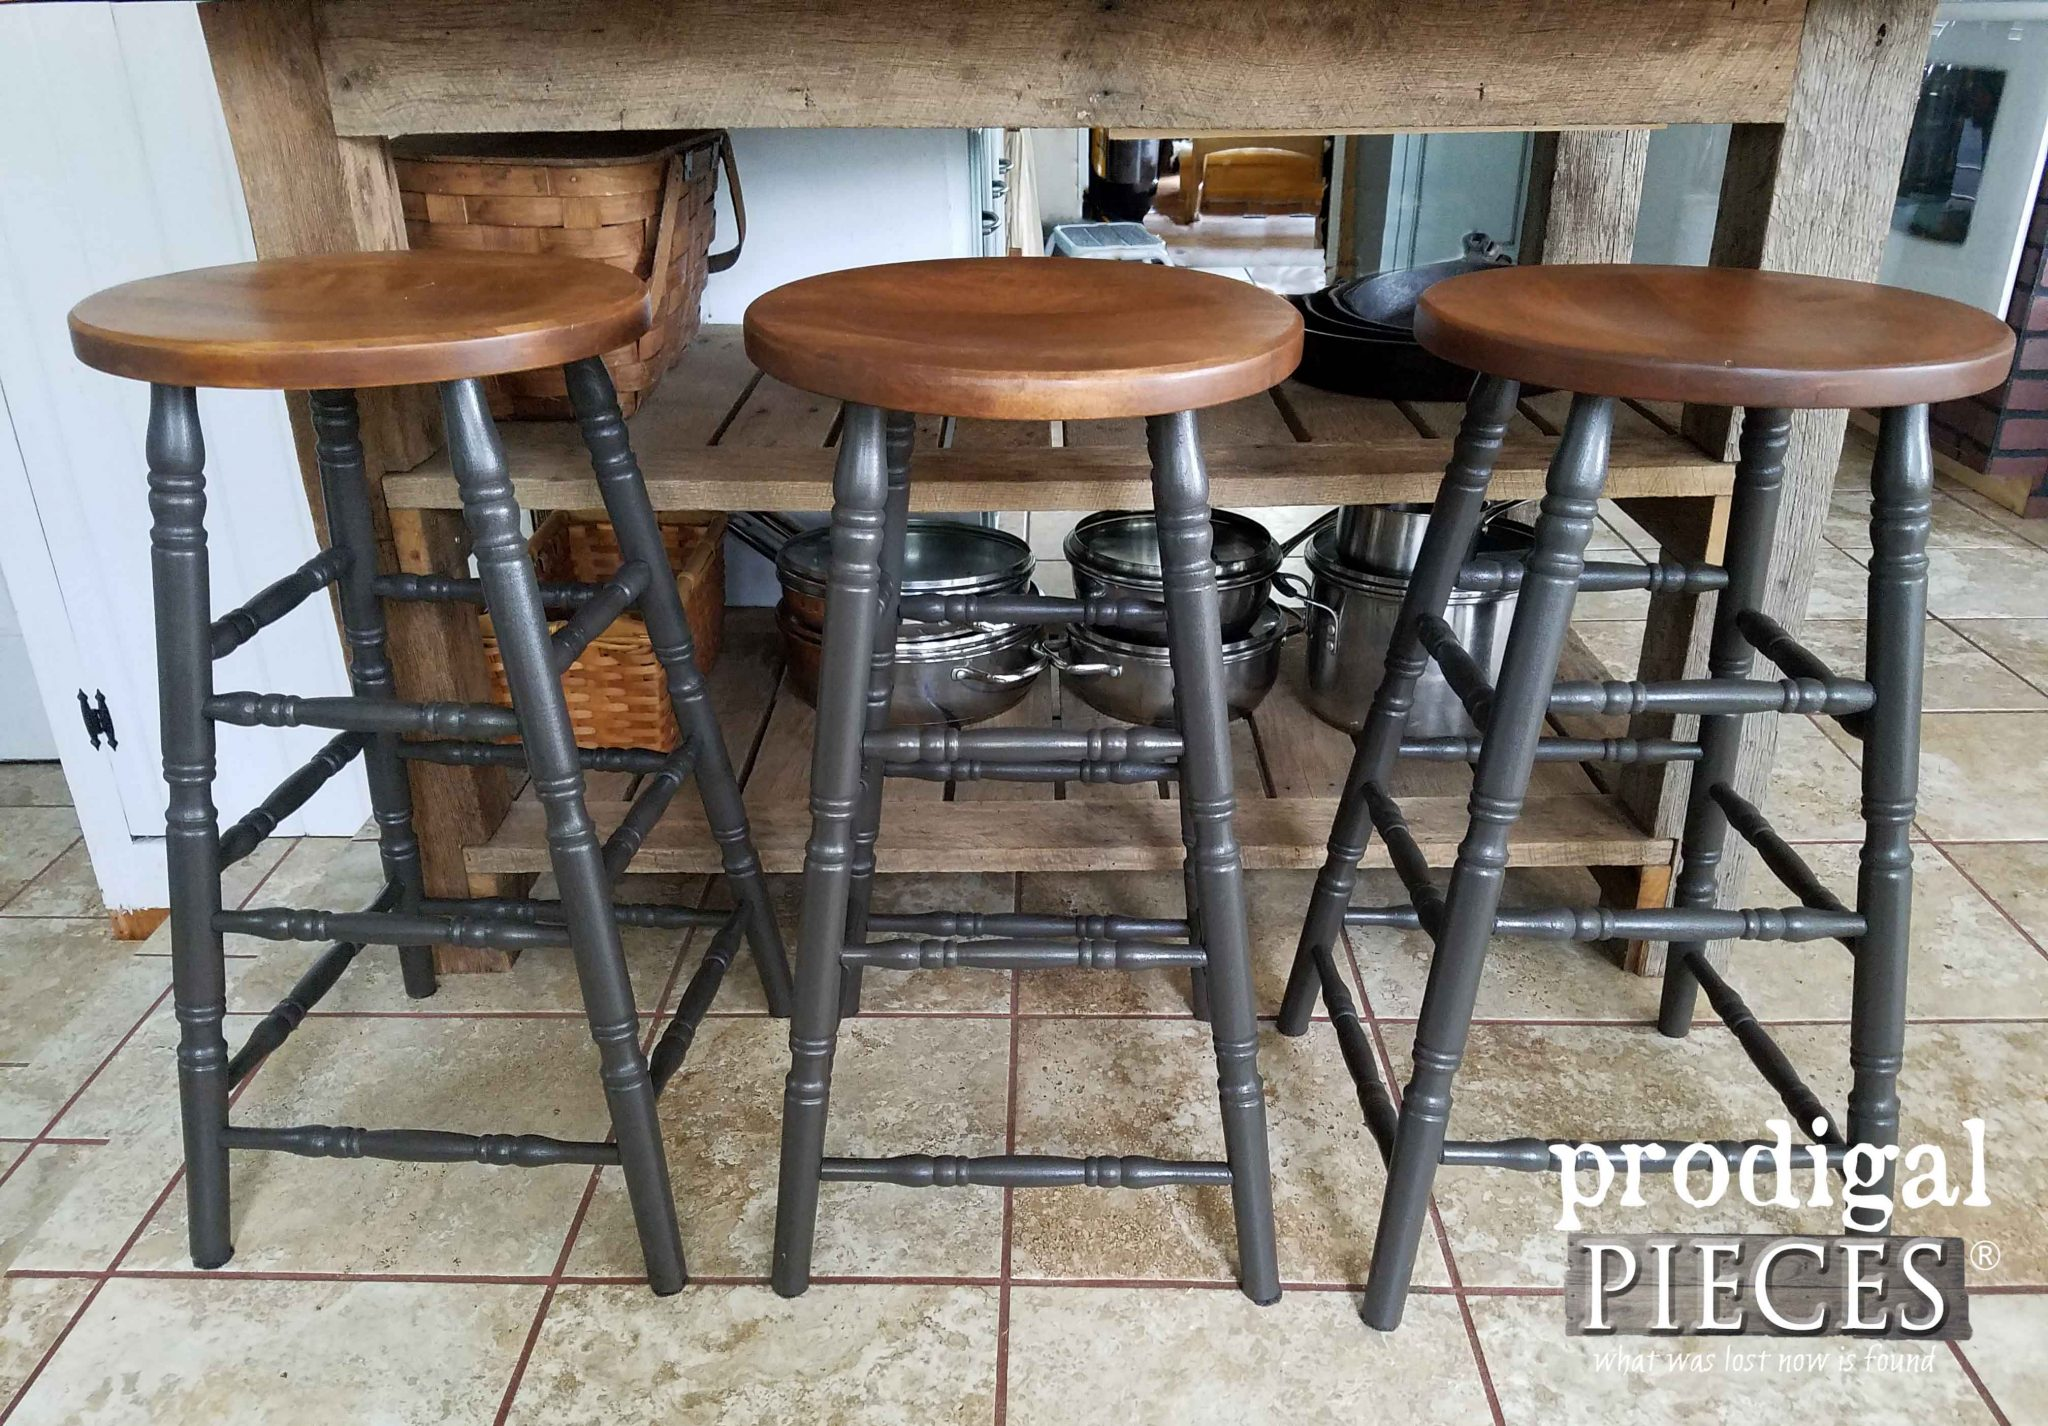 Industrial Style Farmhouse Bar Stools by Prodigal Pieces | prodigalpieces.com